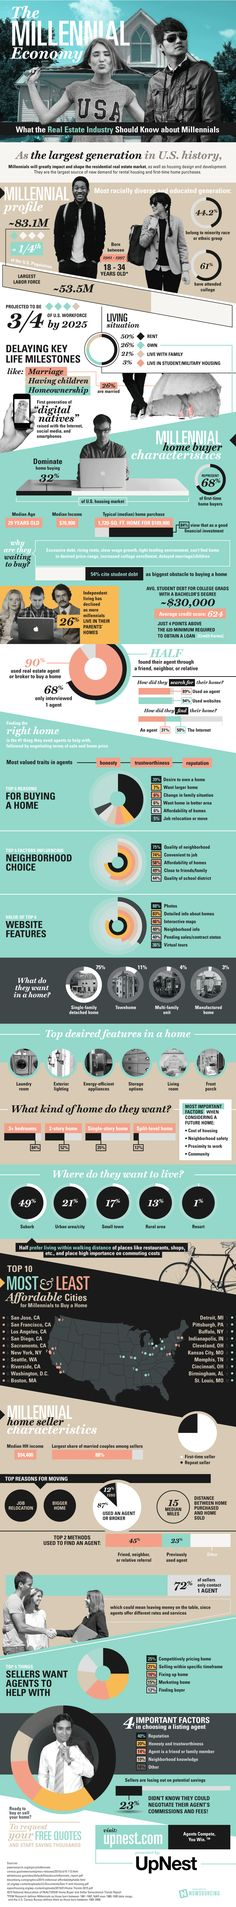 Millennials Are Buying Their First Homes Infographic